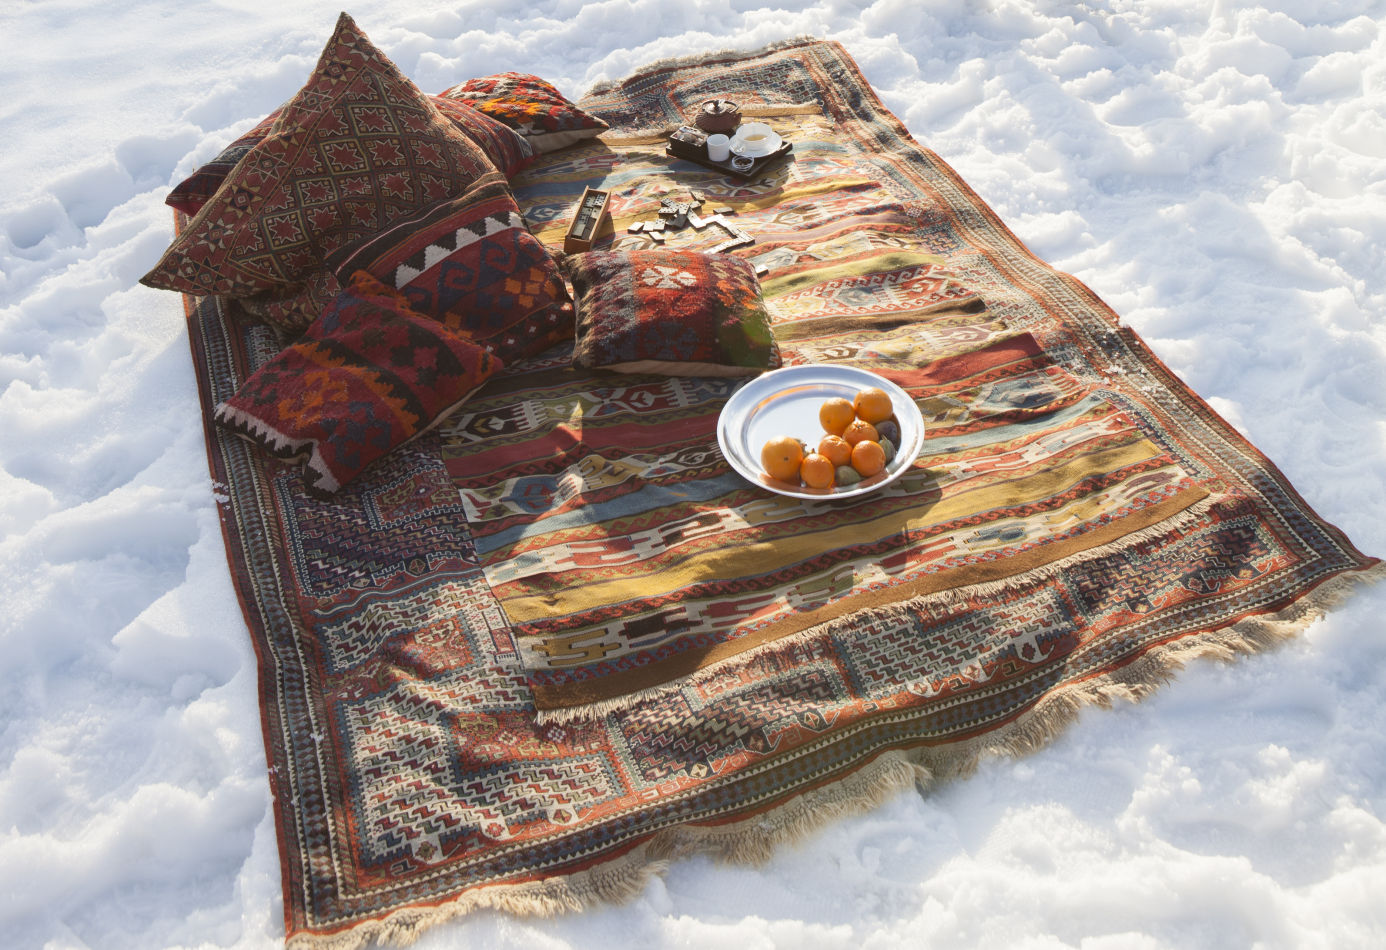 24picknick-in-the-snow